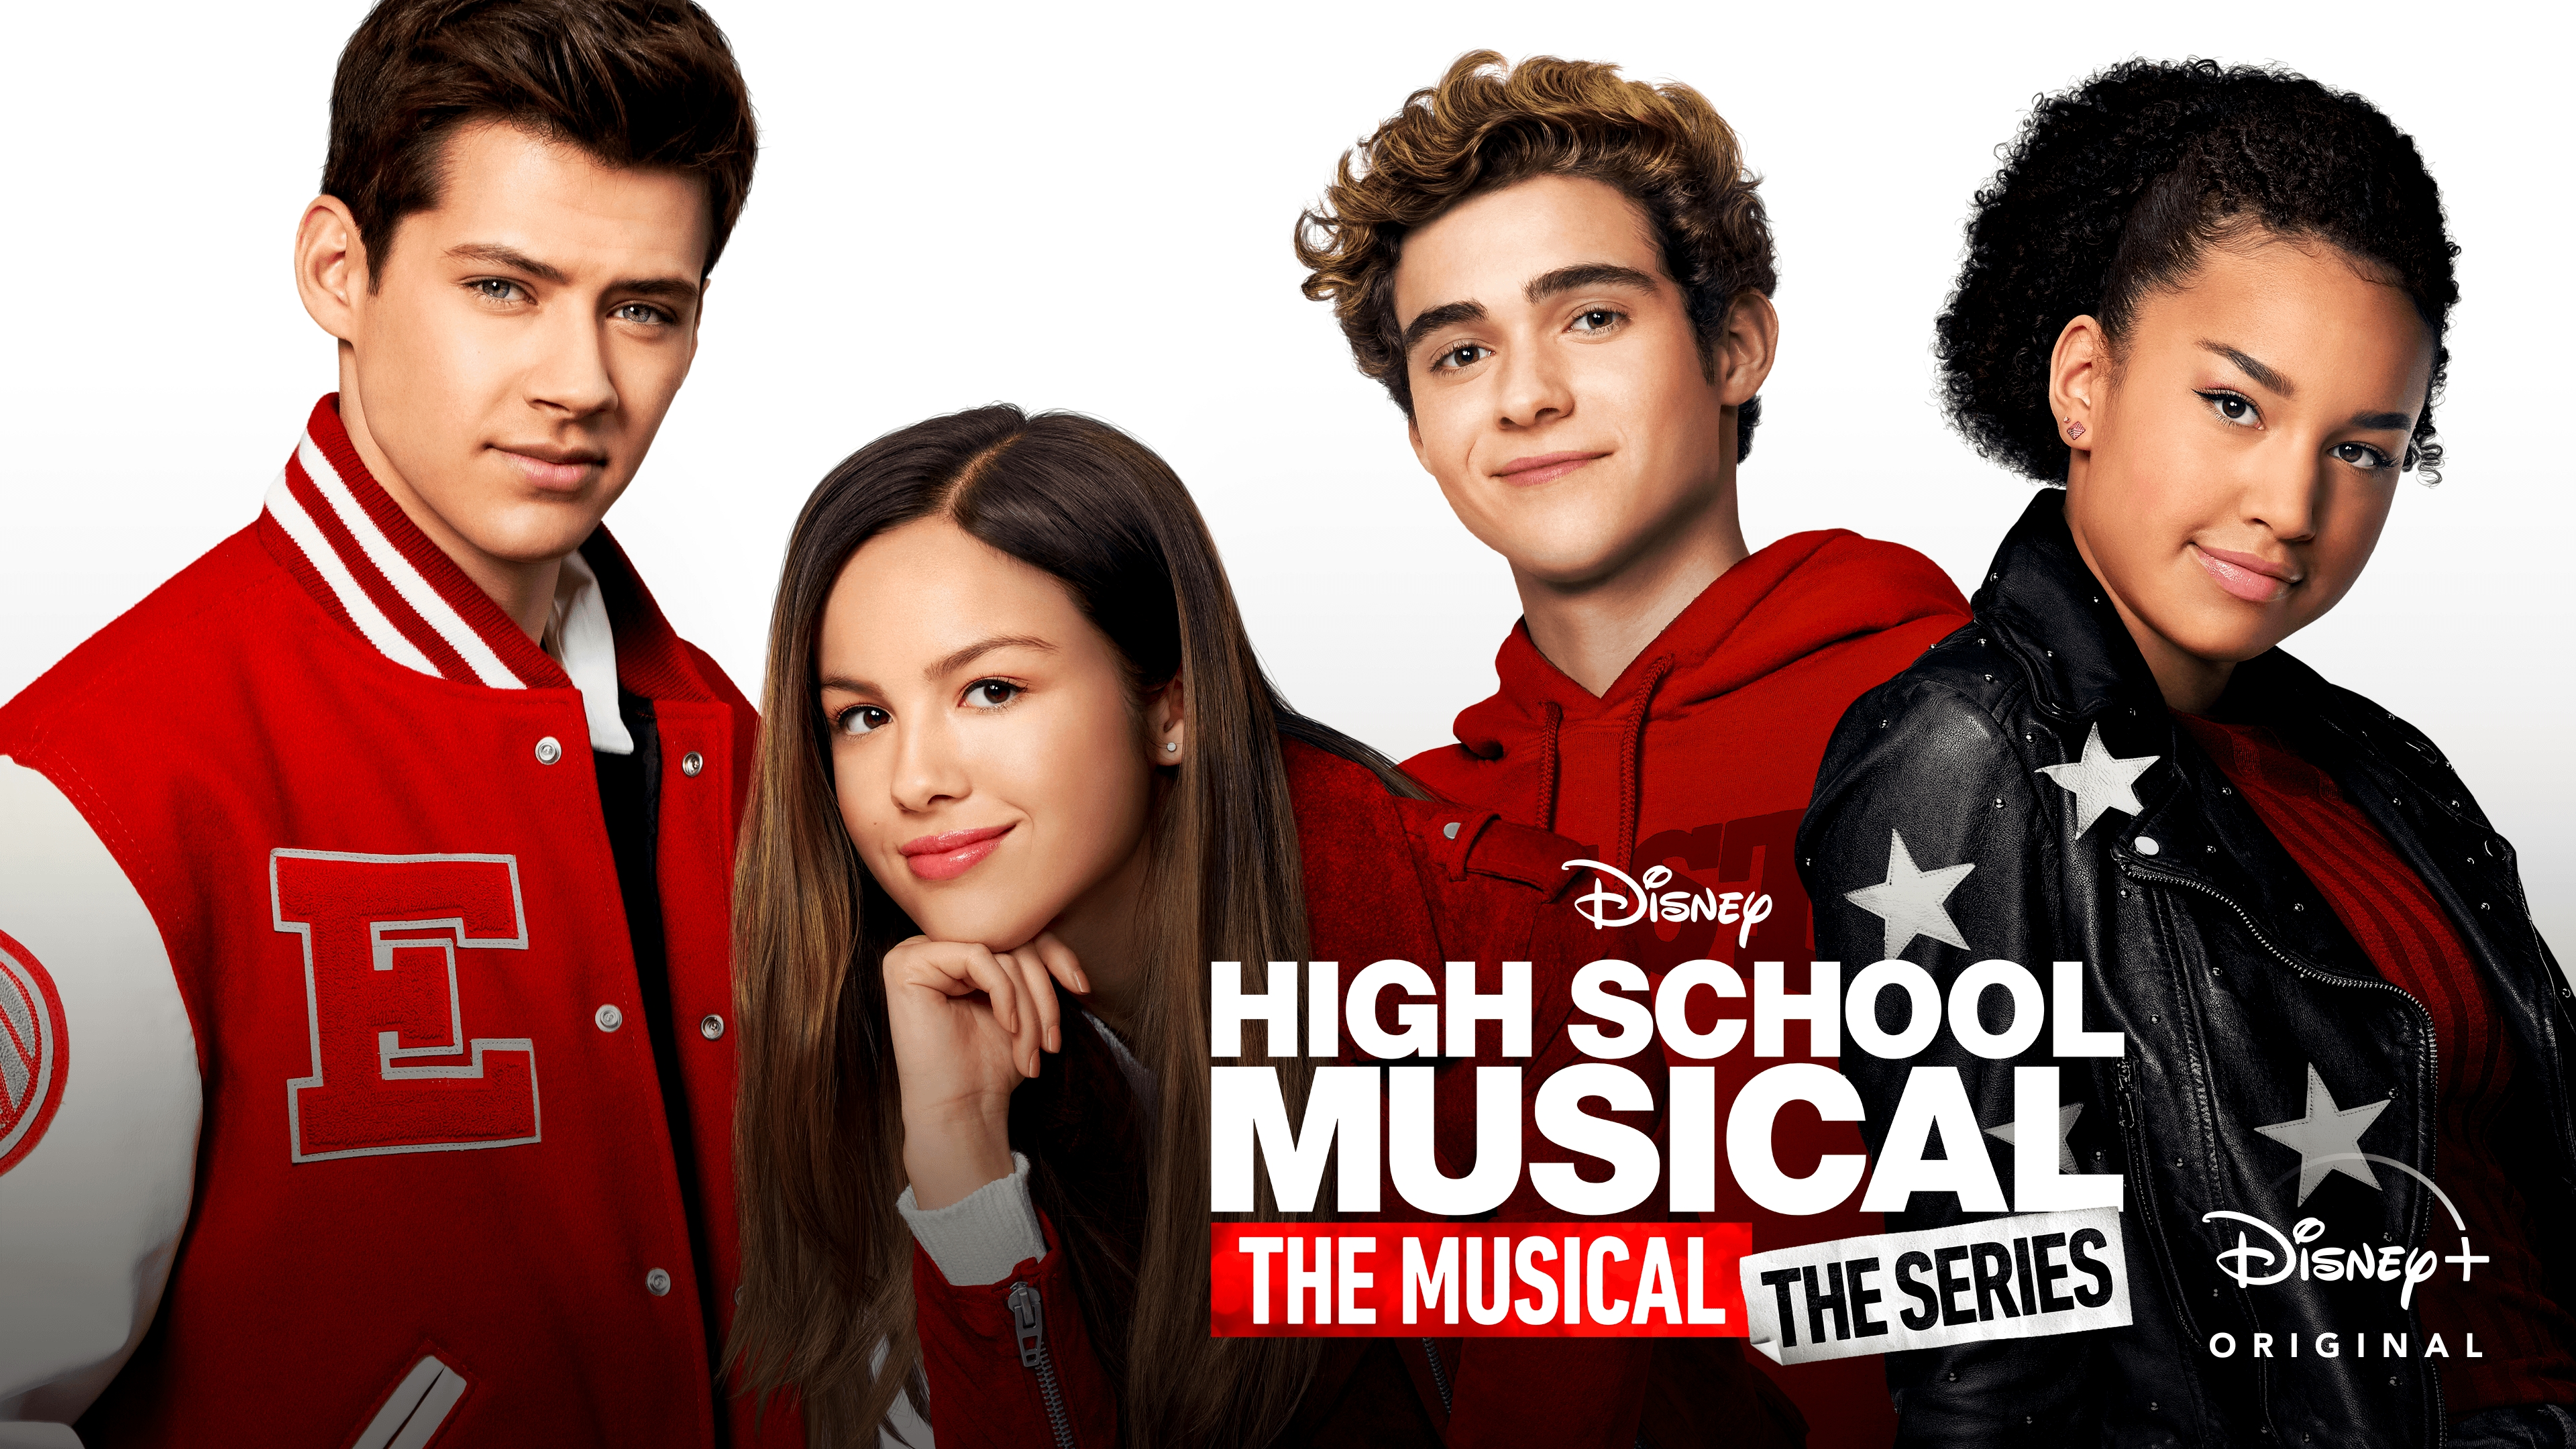 Fondos de pantalla High School musical The musical The series